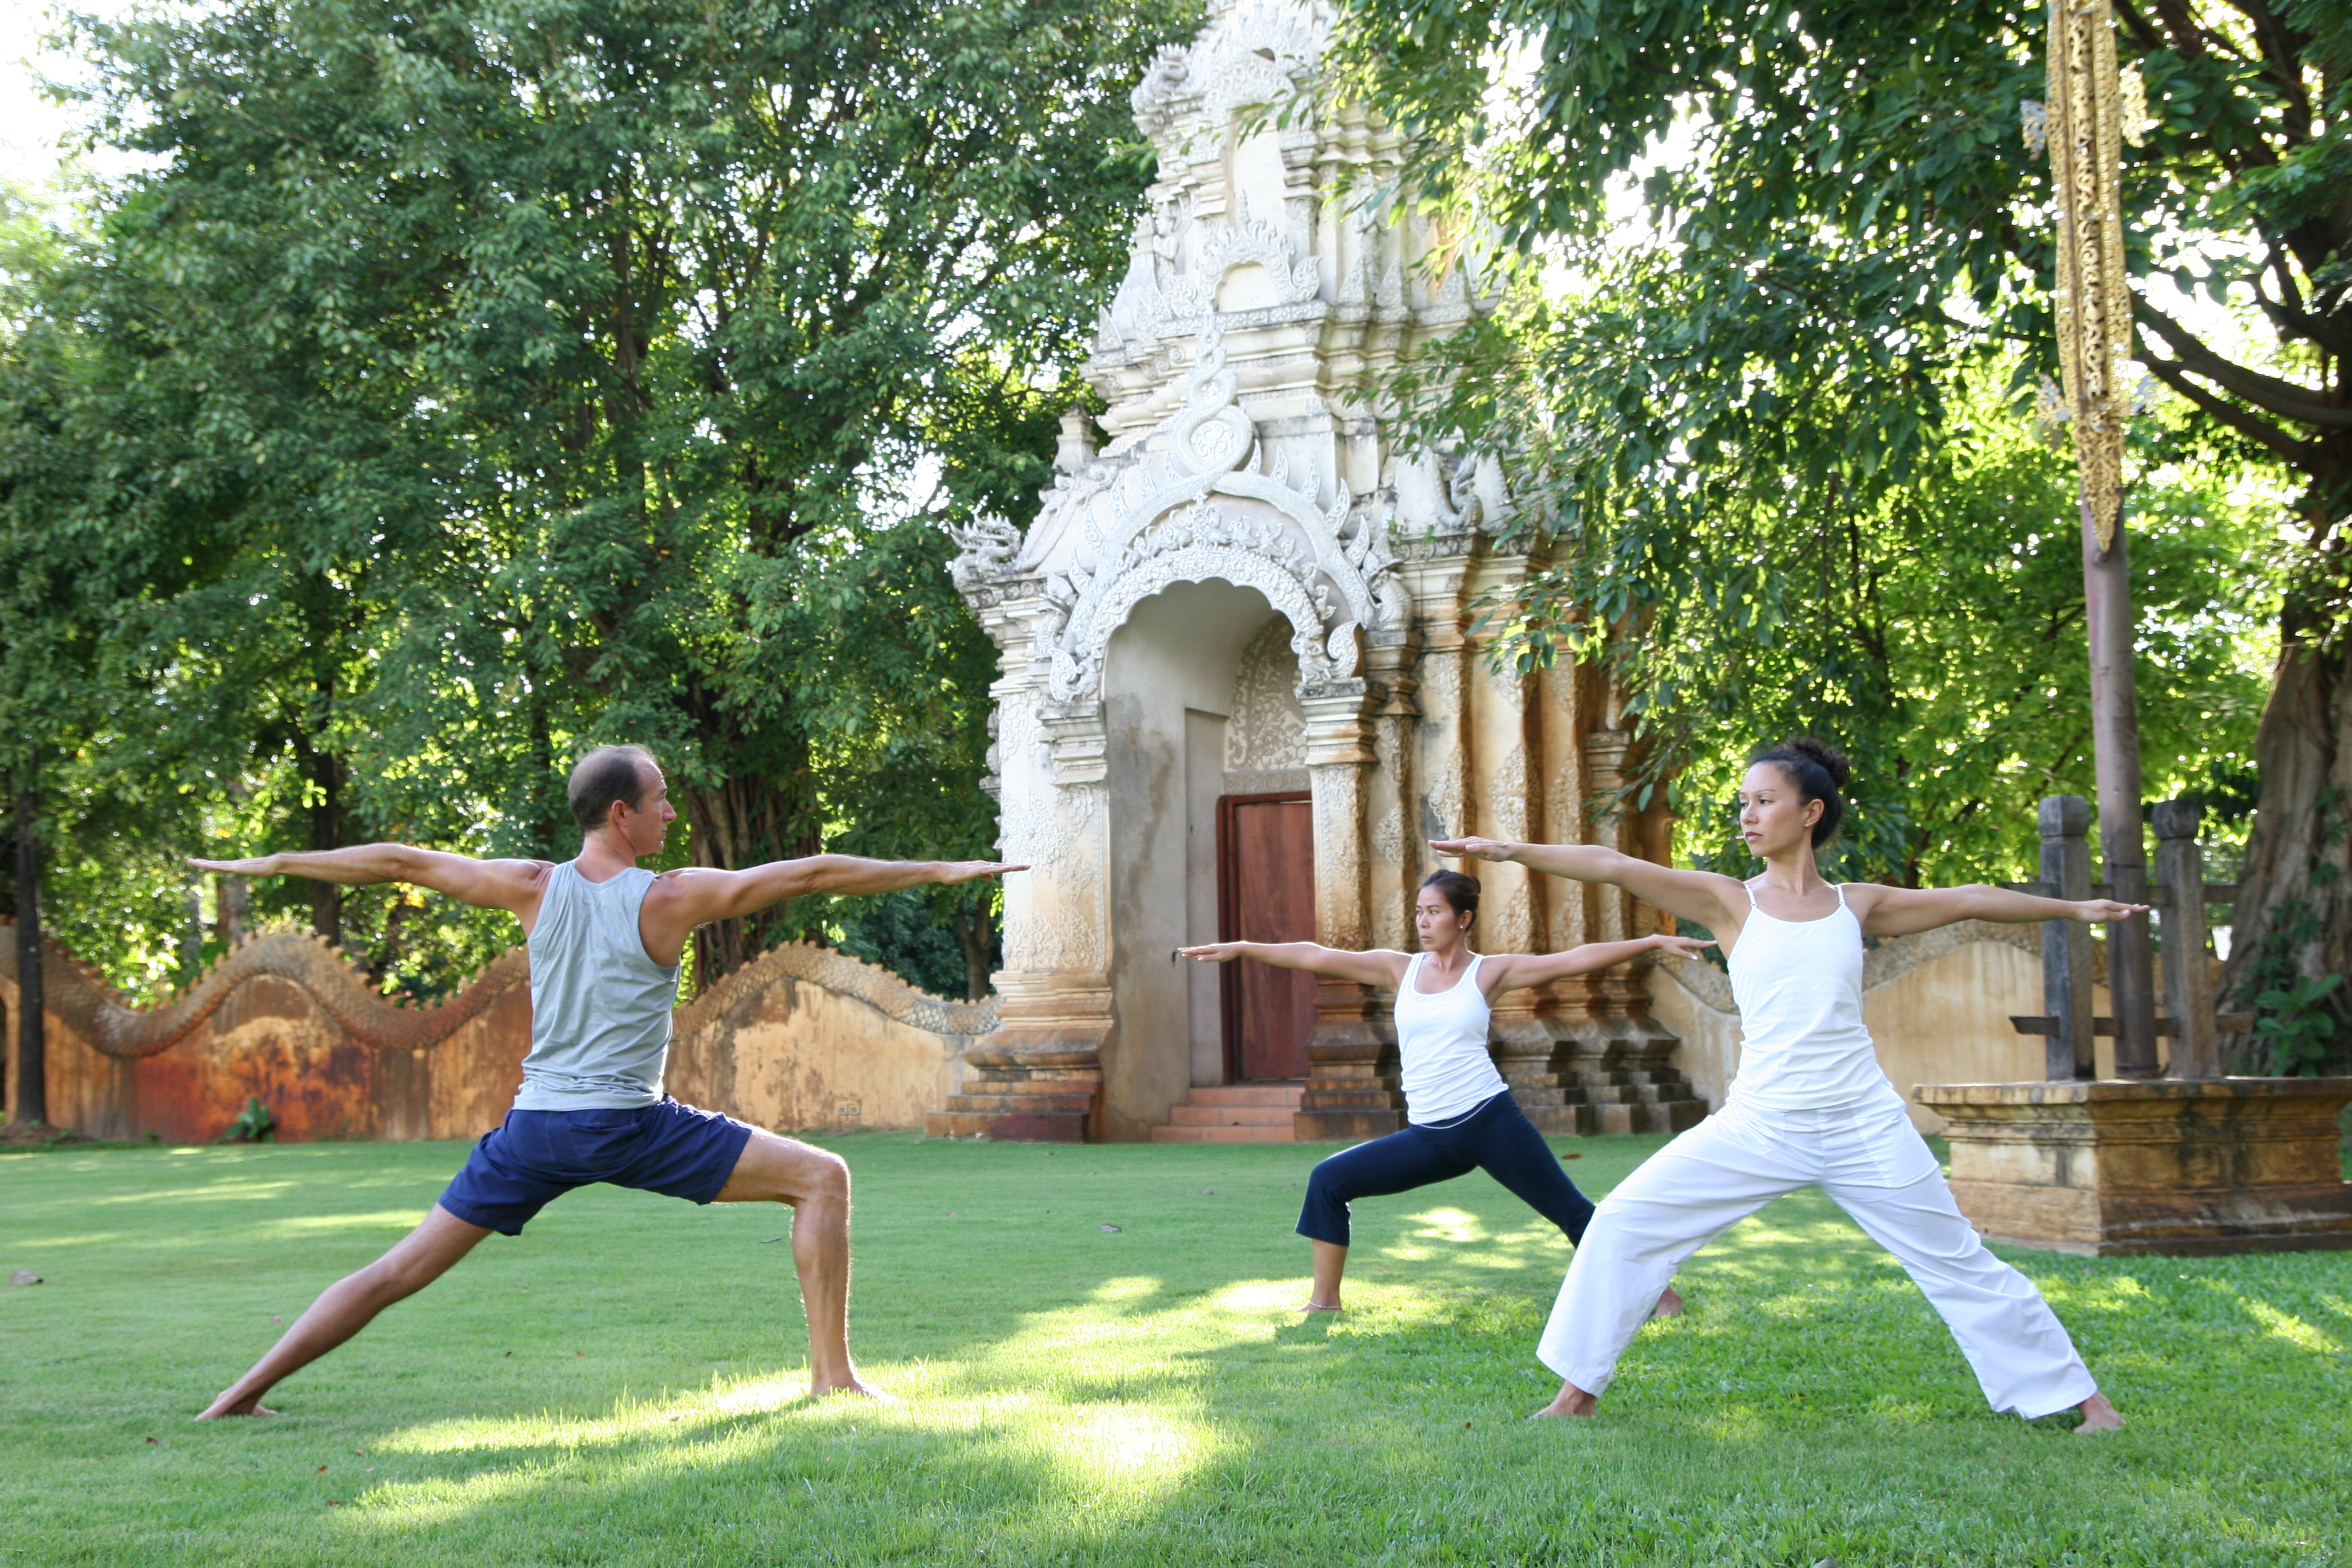 A Powerful Yoga Healing Retreat At The Dhara Dhevi Chiang Mai Barefoot Luxe Blog Asia Luxury Travel Best Spas Wellness Top Hotels Resorts Barefoot Luxury Lifestyle